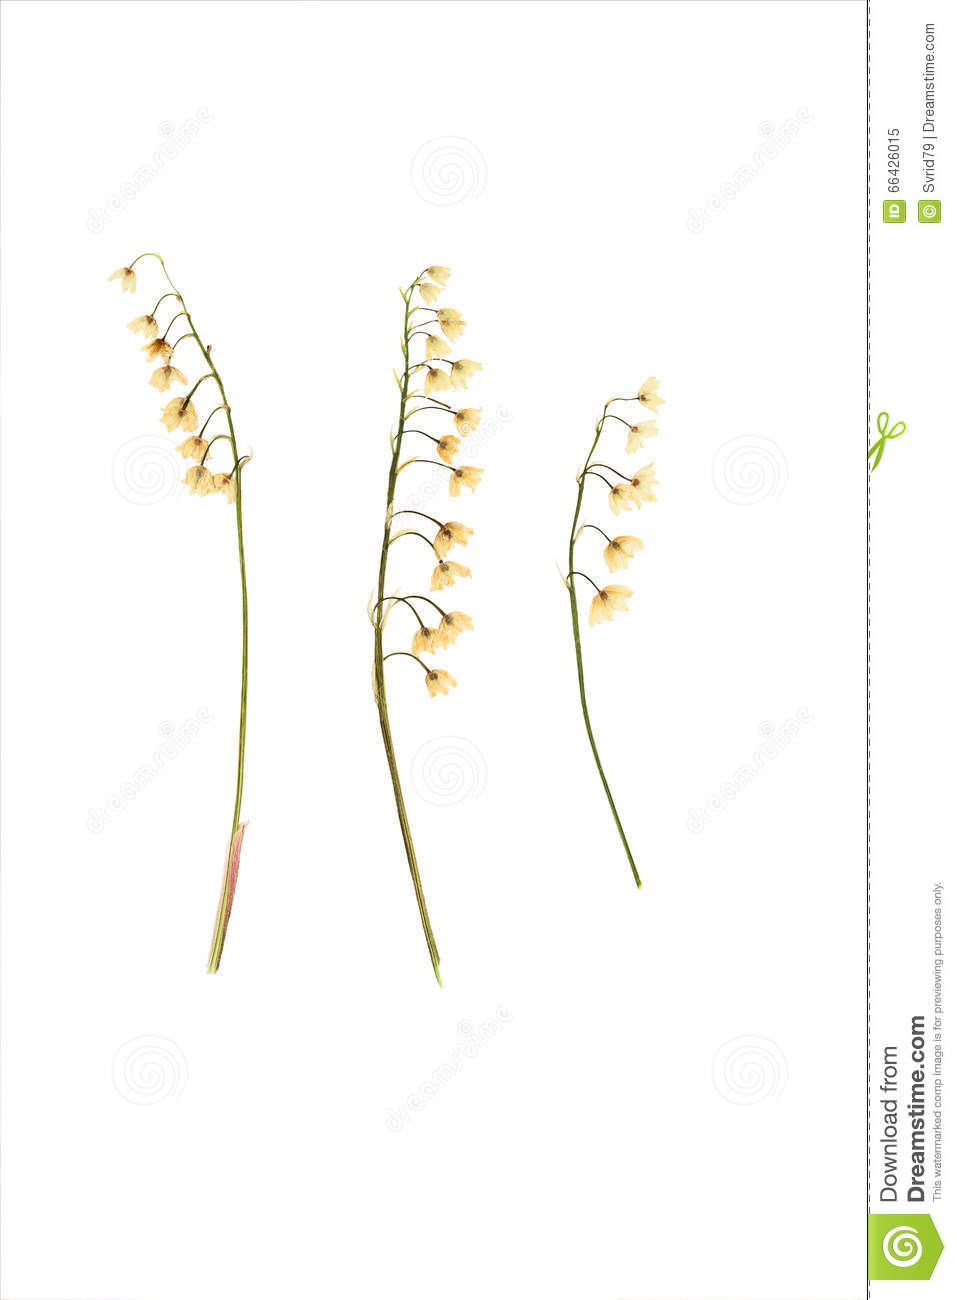 Pressed and dried flower lily of the valley stock image image of pressed and dried flower lily of the valley izmirmasajfo